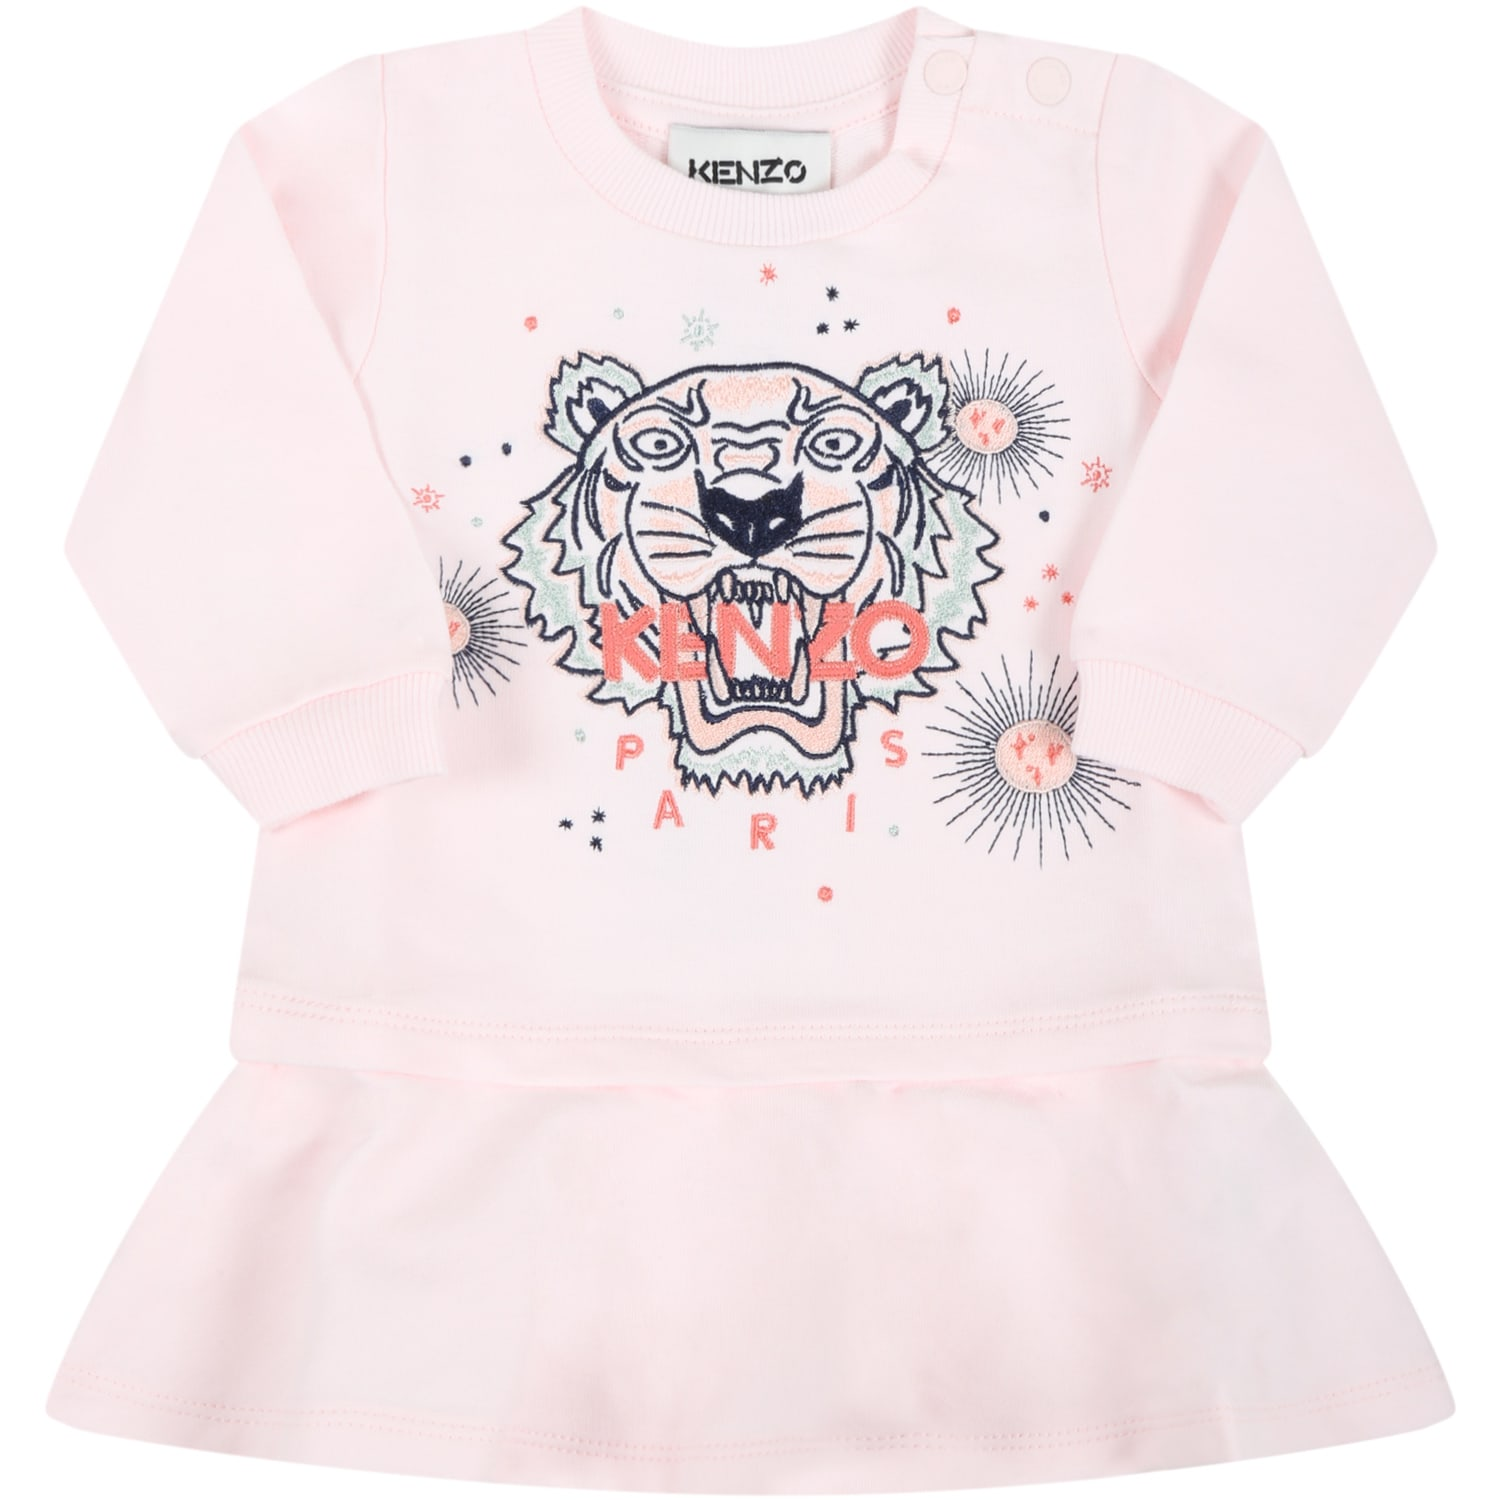 Pink Dress For Baby Girl With Iconic Tiger